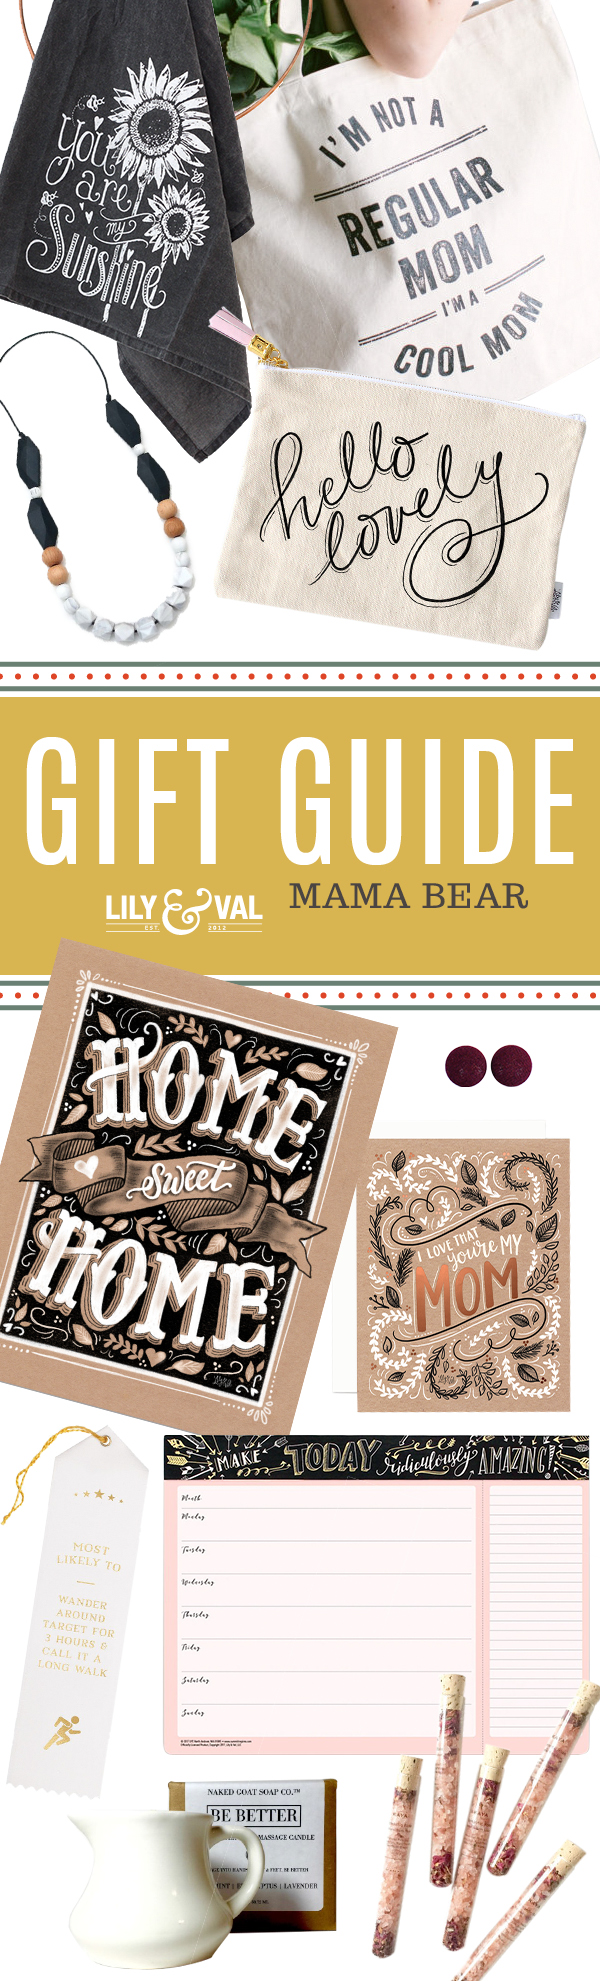 Lily & Val Gift Guide: Mama Bear